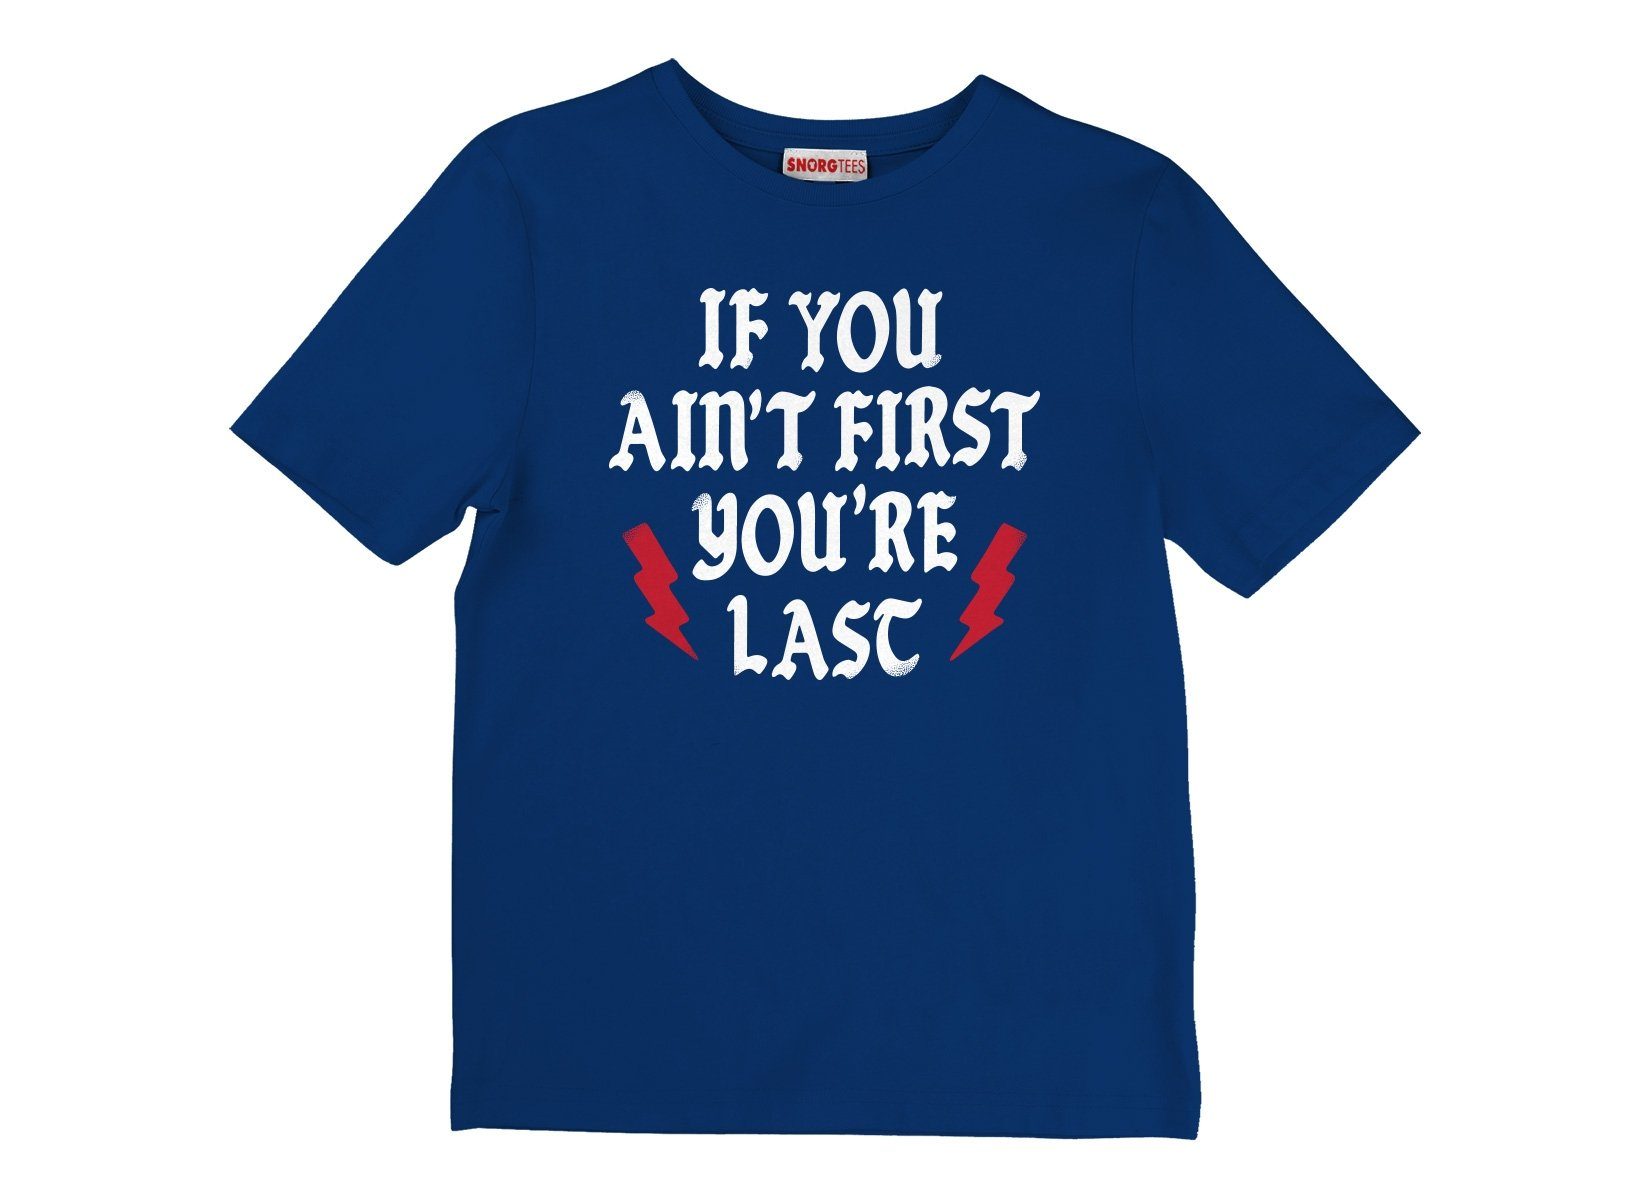 If You Ain't First You're Last on Kids T-Shirt